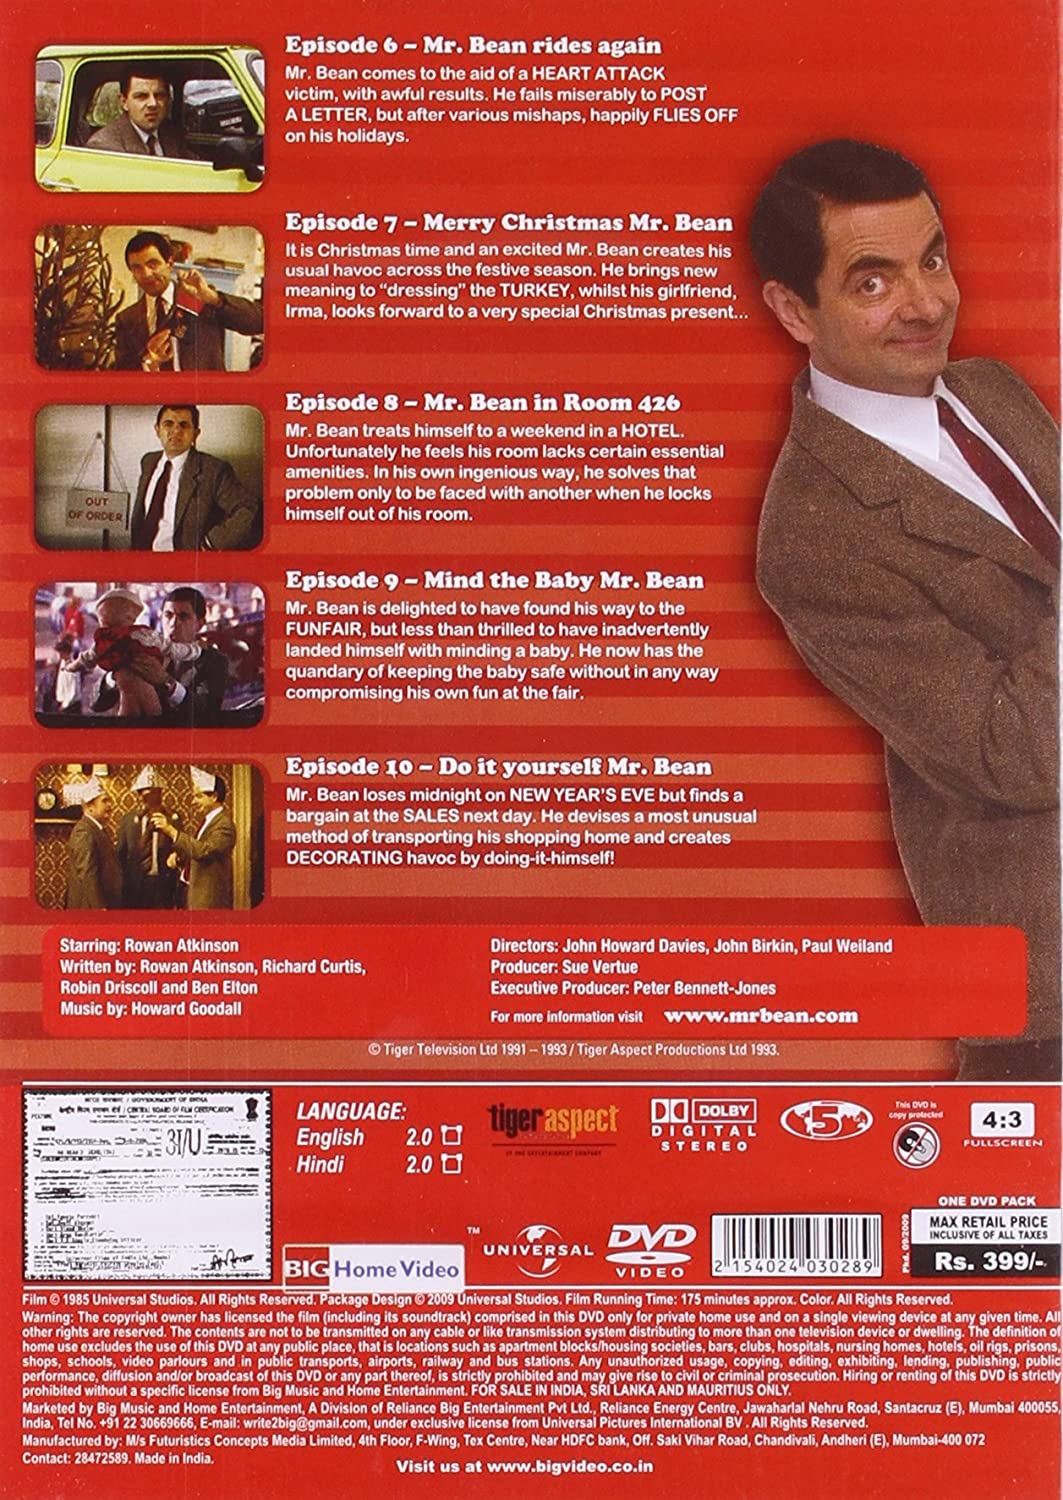 Amazon buy mr bean live action vol 2 dvd blu ray online at amazon buy mr bean live action vol 2 dvd blu ray online at best prices in india movies tv shows solutioingenieria Image collections